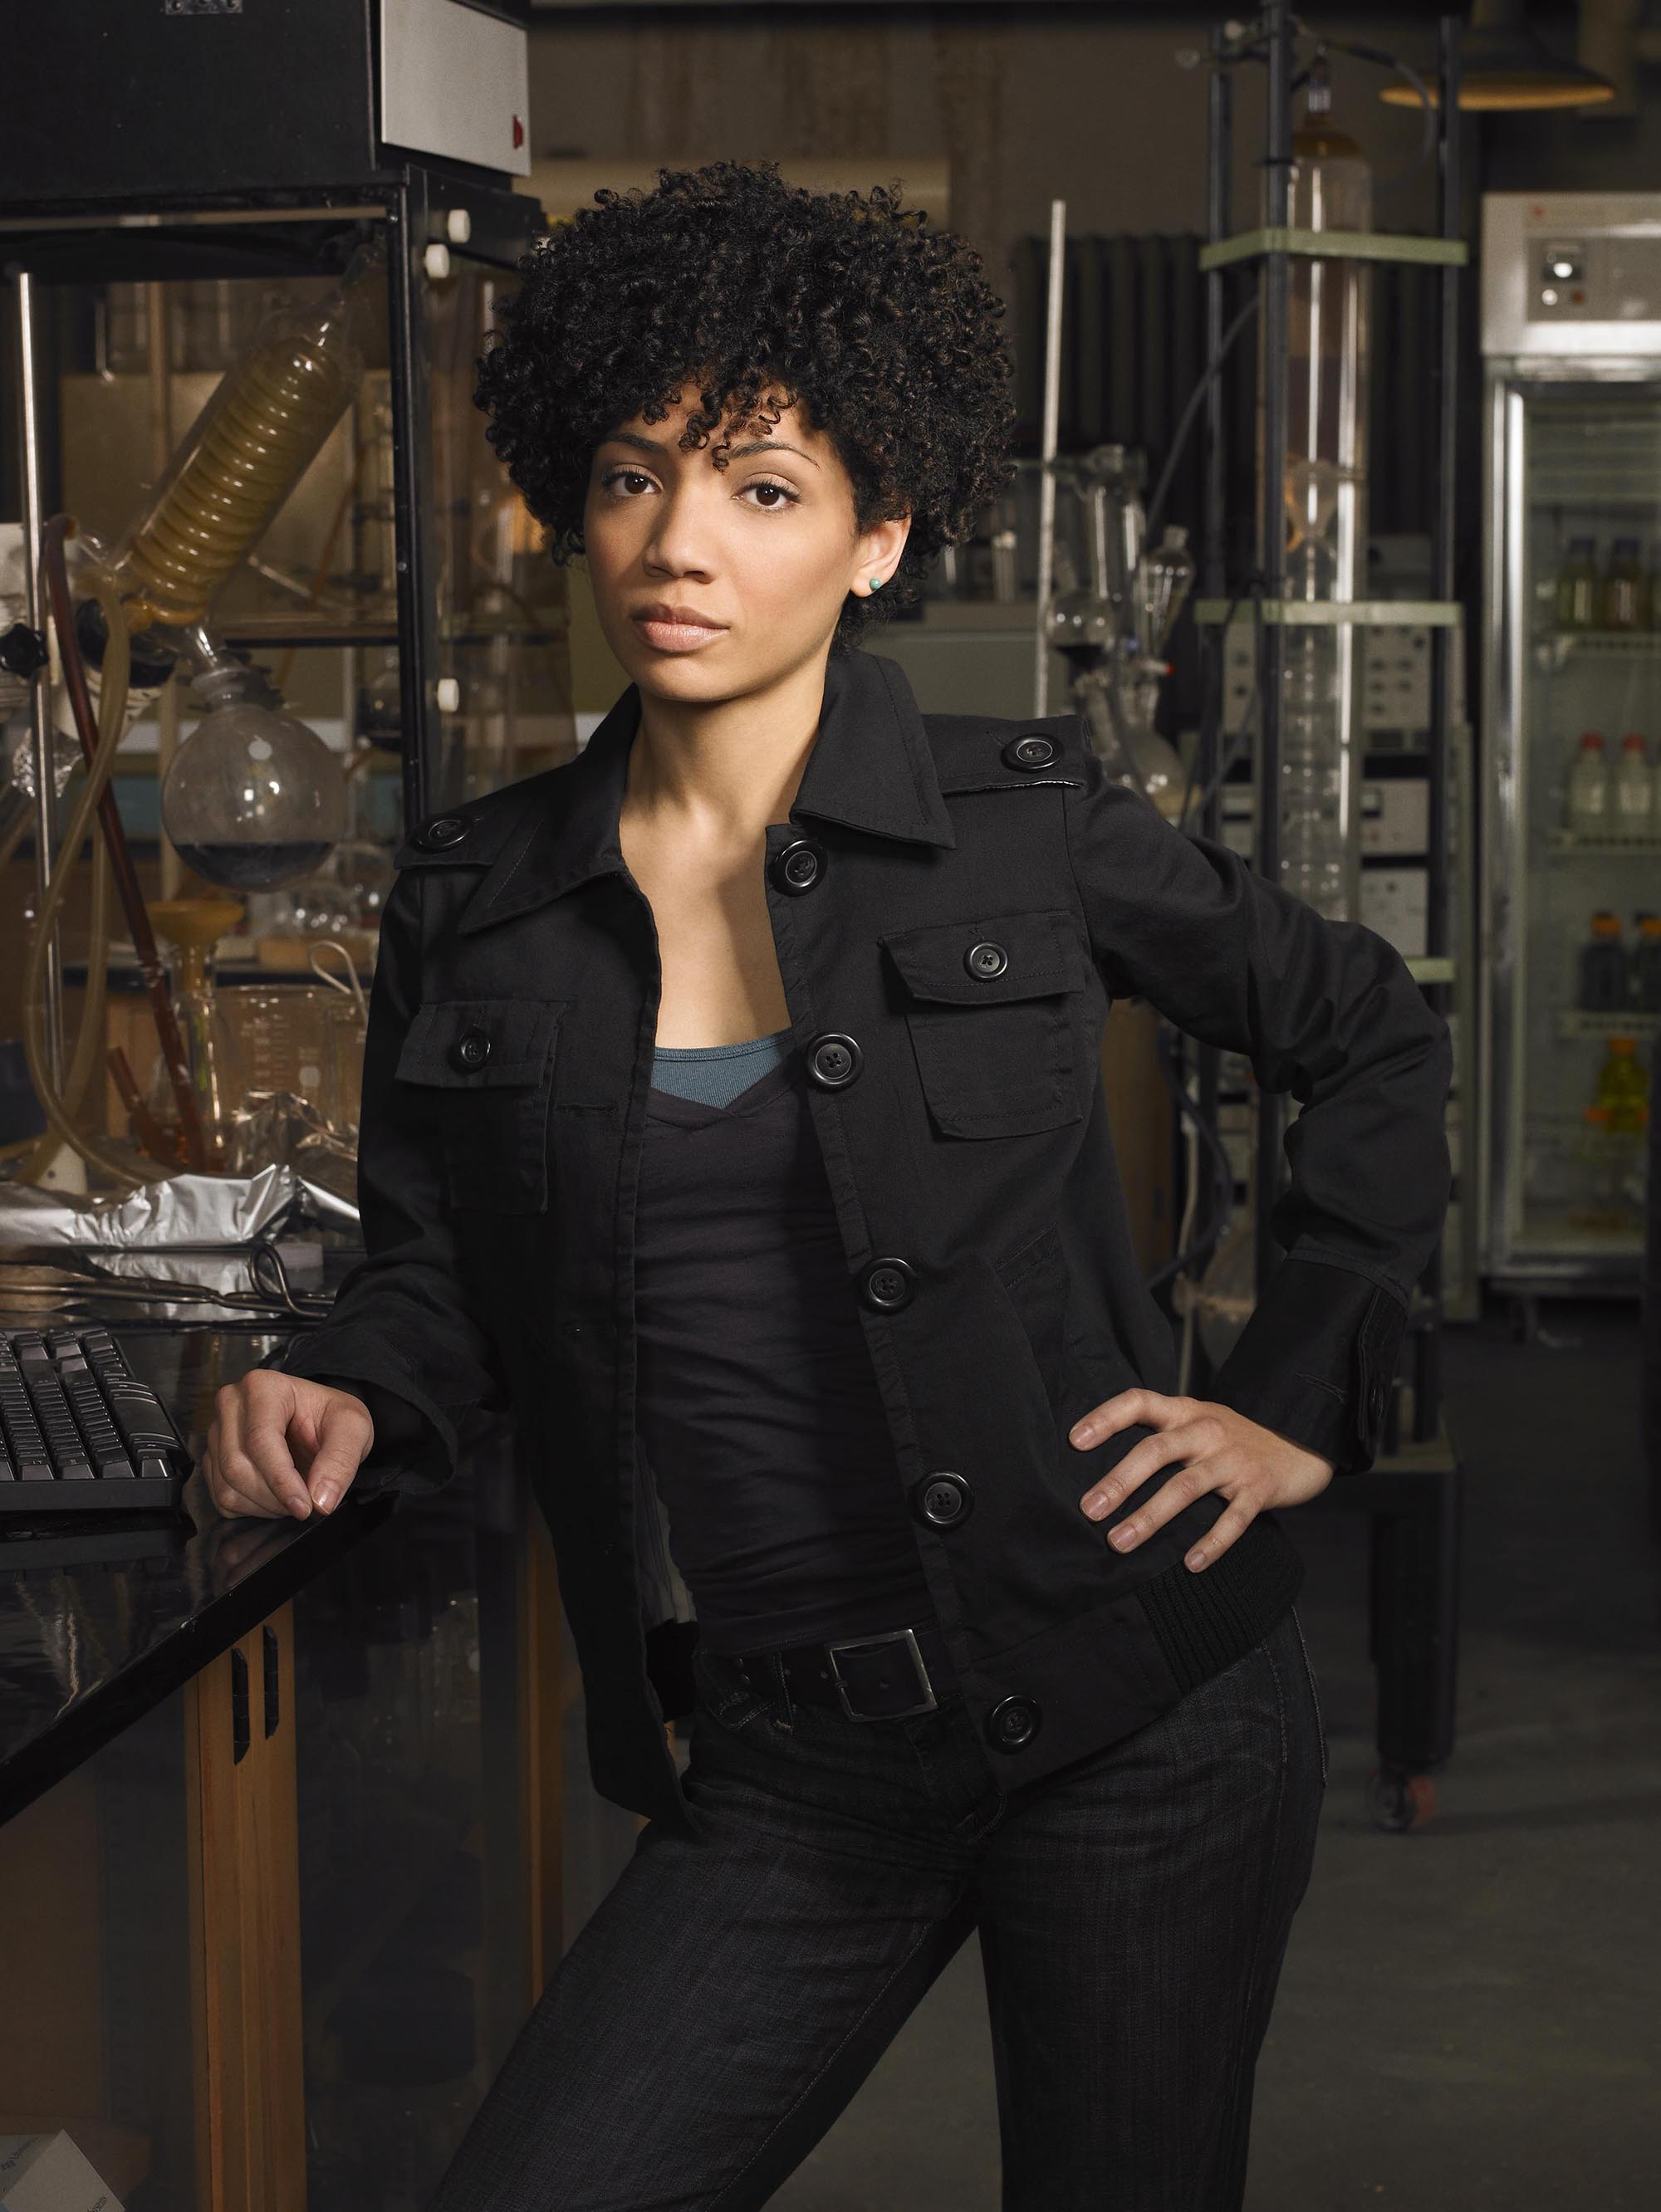 FRINGE: When an unlikely trio uncovers a deadly mystery that involves a series of unbelievable events, they discover it may be part of a larger, more disturbing pattern that blurs the line between science fiction and technology on FRINGE airing Tuesdays (9:00-10:00 PM ET/PT) this fall on FOX. Pictured: Jaskia Nicole as Astrid ©2008 Fox Broadcasting Co. Cr: Michael Lavine/FOX